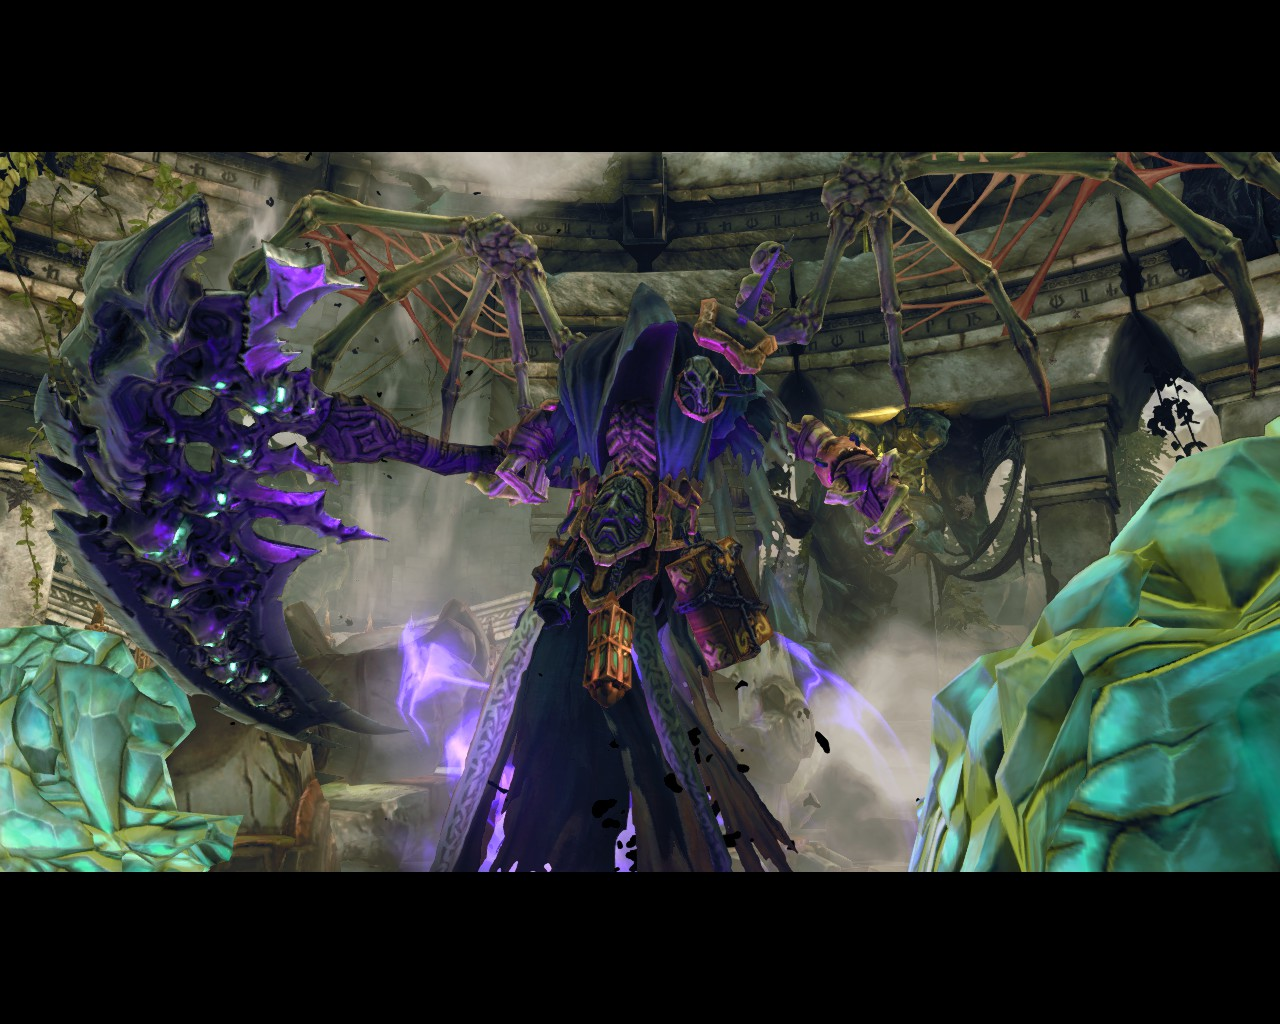 darksiders 2 reaper formmichal4269 on deviantart